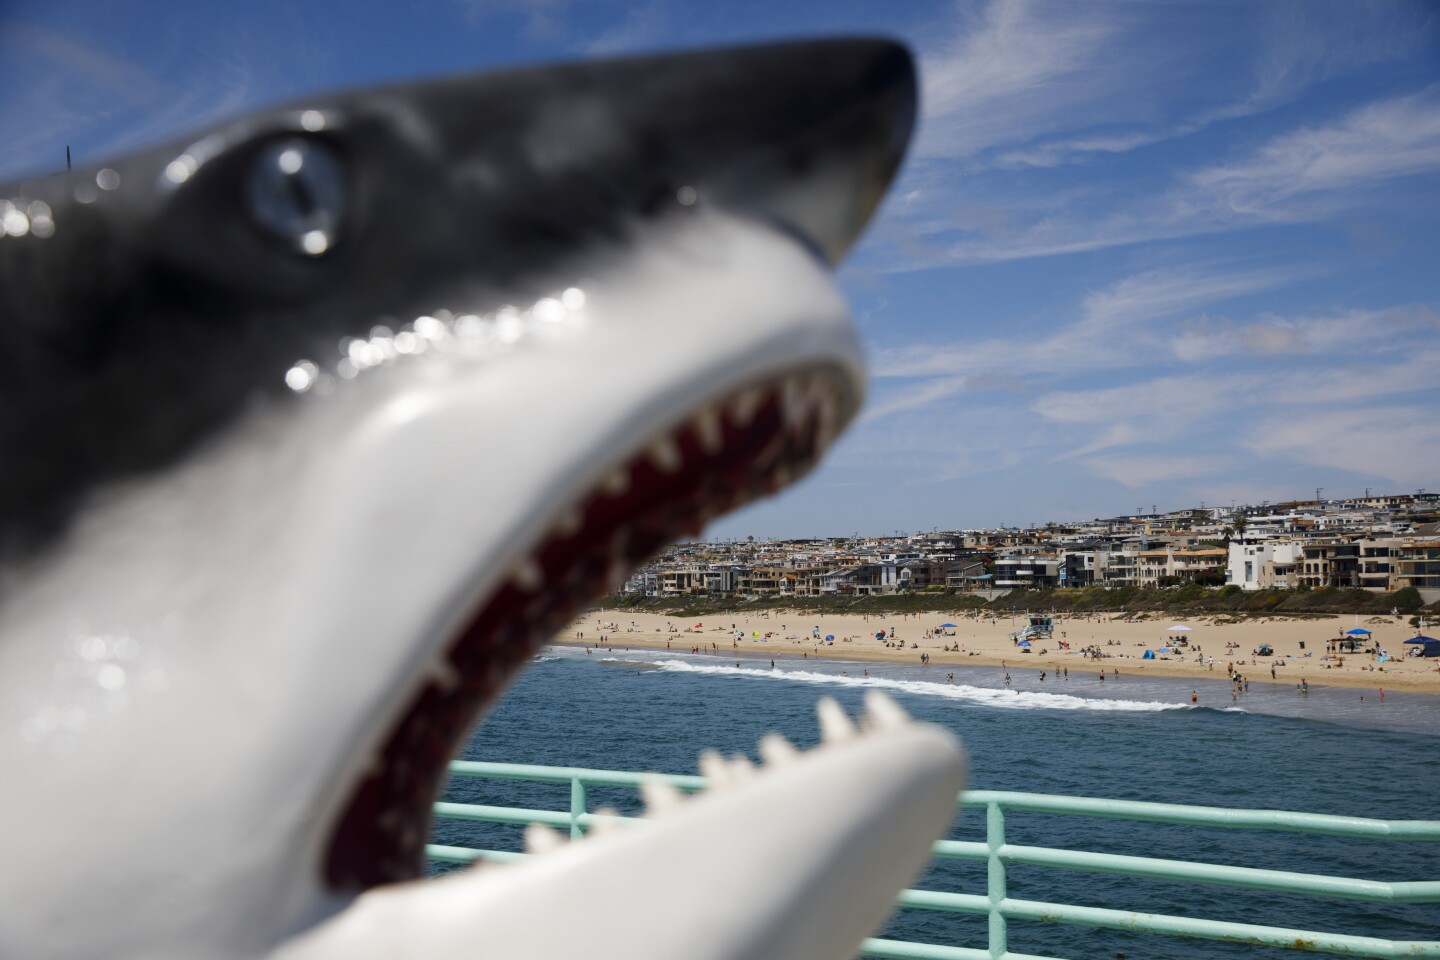 A model of a Great White Shark (Carcharodon carcharias) frames homes on The Strand from the Roundhouse Aquarium on the Manhattan Beach Pier on Sunday, August 18, 2019 in Manhattan Beach, CA. (Patrick T. Fallon/ For The Los Angeles Times)